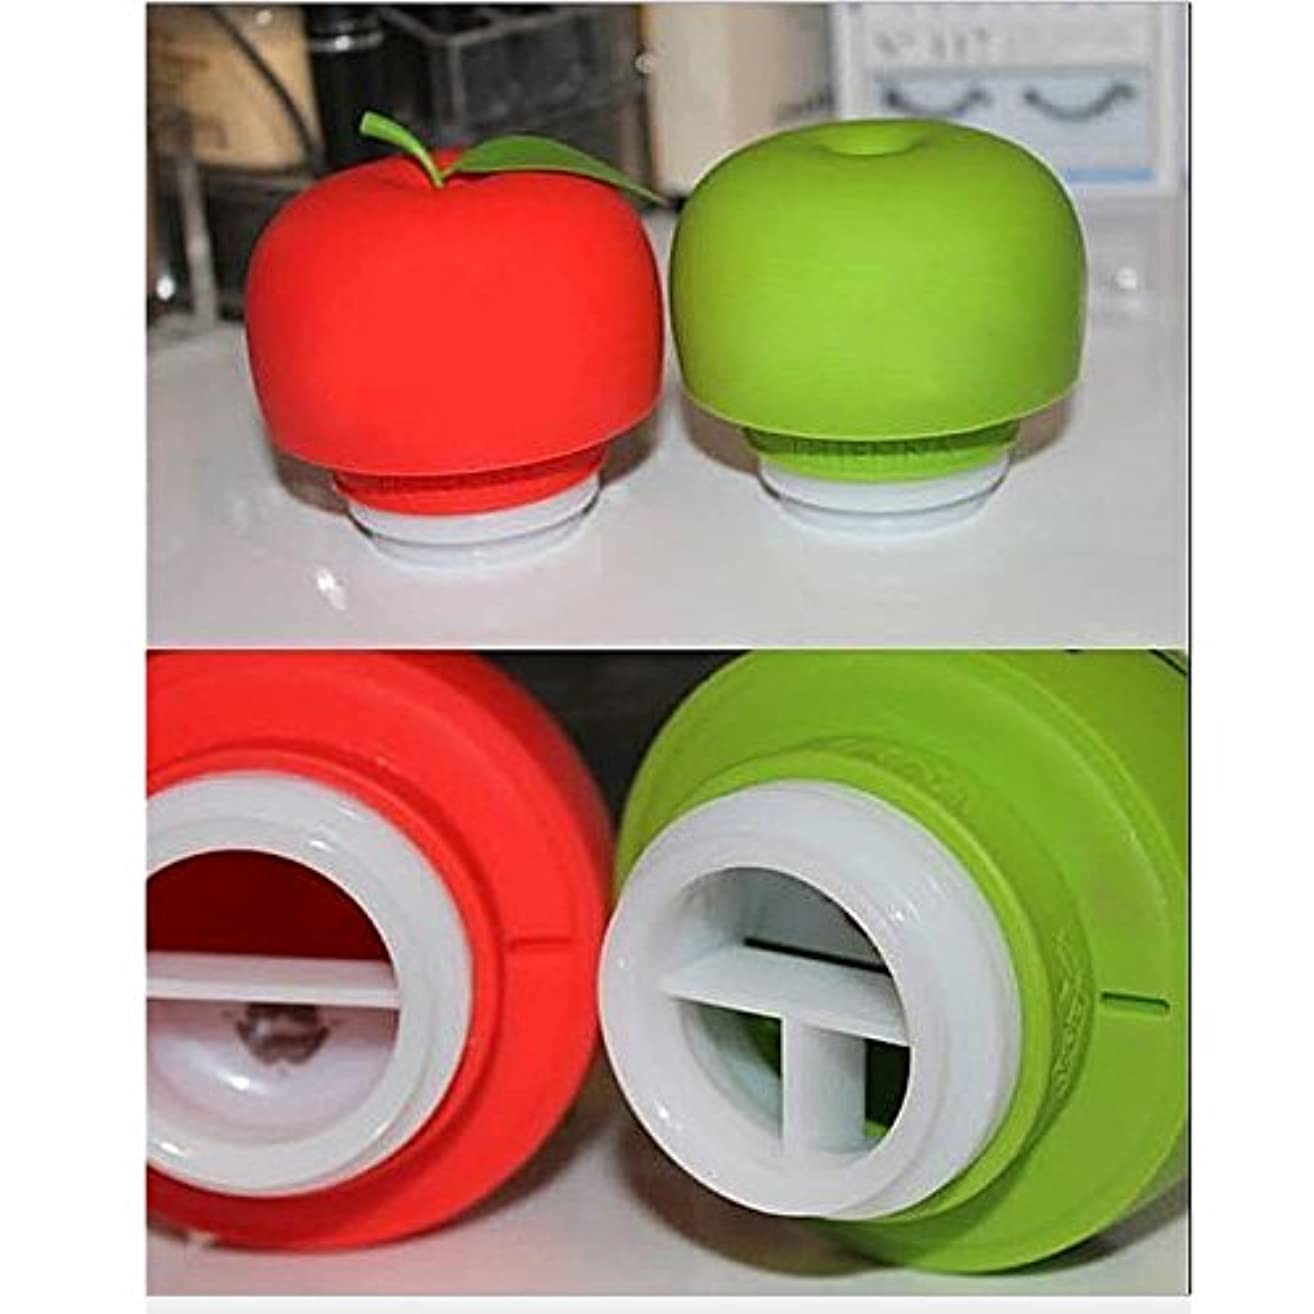 Stingna Sexy Full Lip Plumper Enhancer Hot Sexy Mouth Beauty Lip Pump Enhancement Green Double or Red Single Lobbed Lips Pump Device Quick Lip Plumper Enhancer (GREEN)